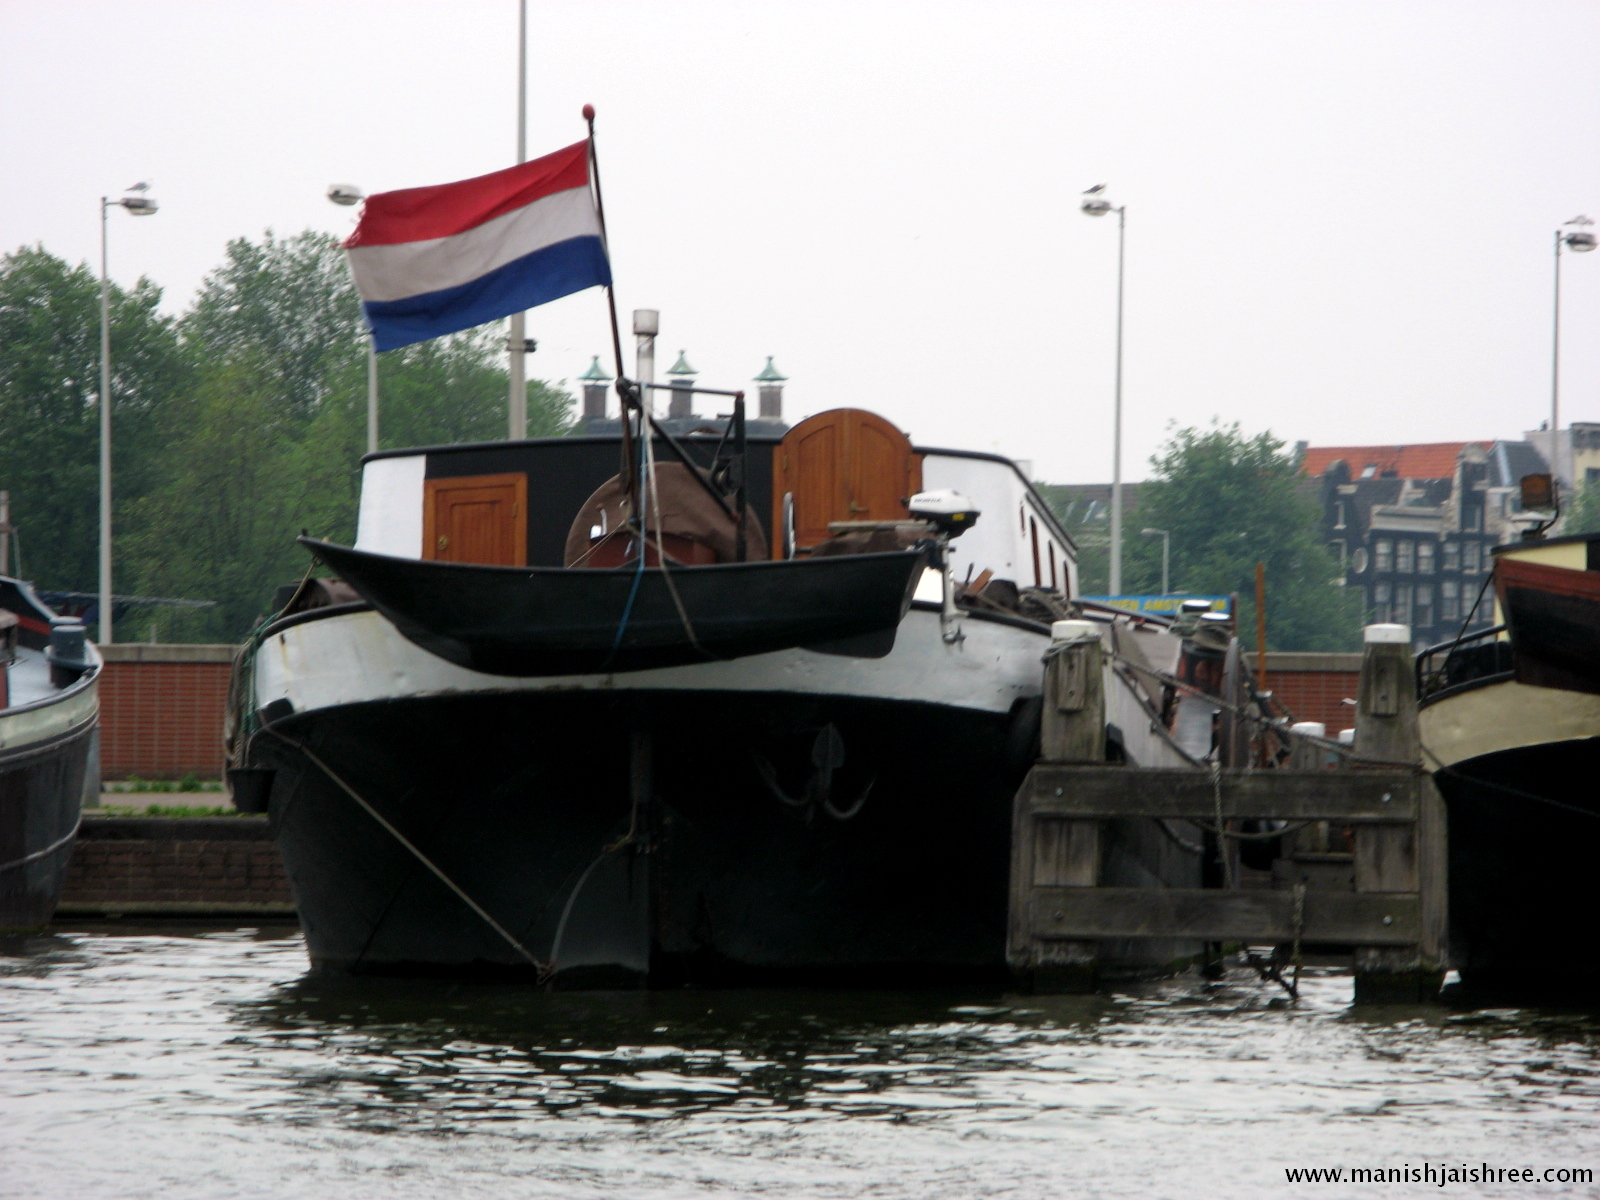 The Dutch tricolor